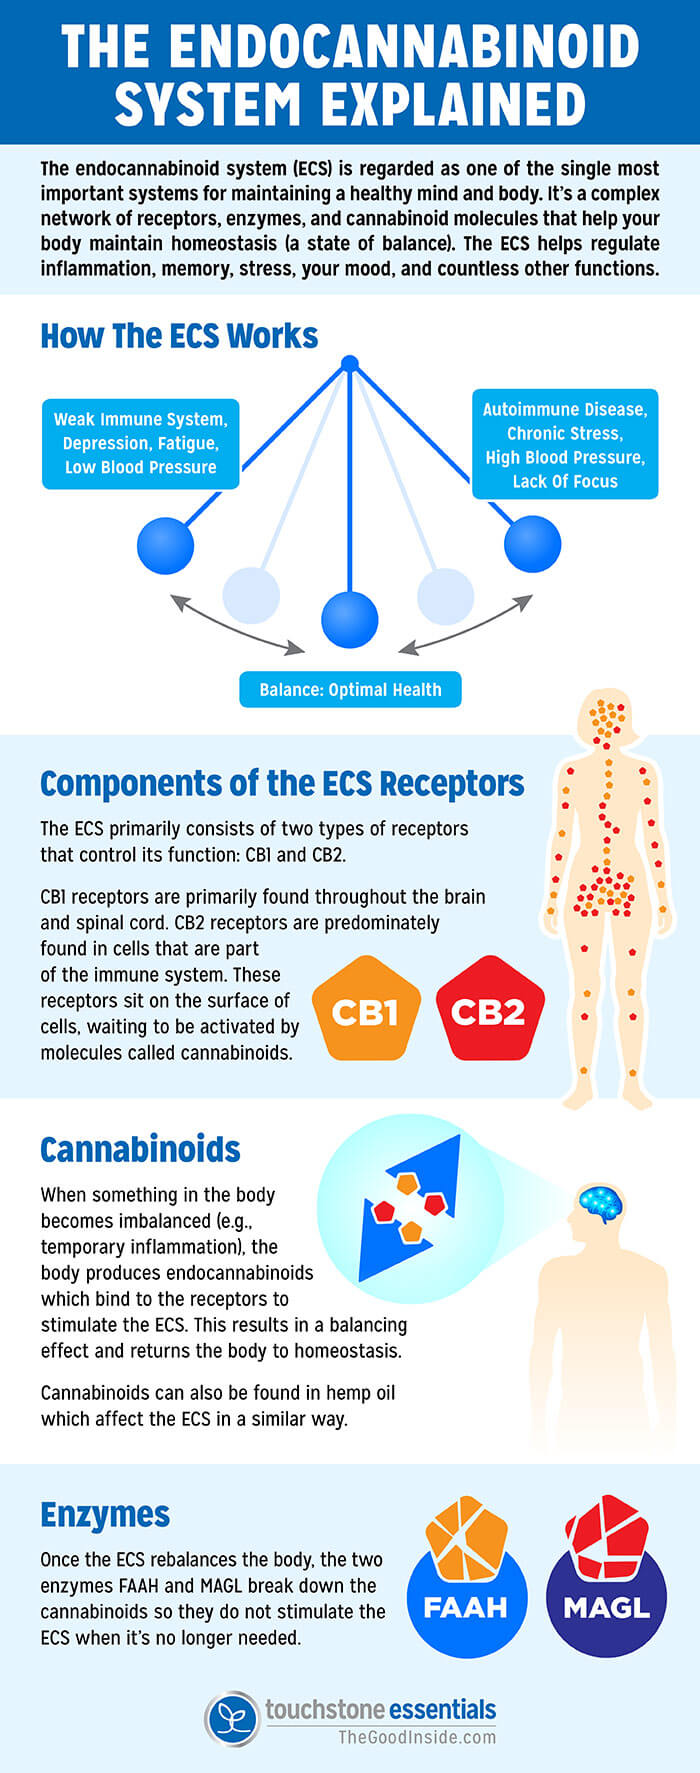 How CBD Oil Works with the Endocannabinoid System